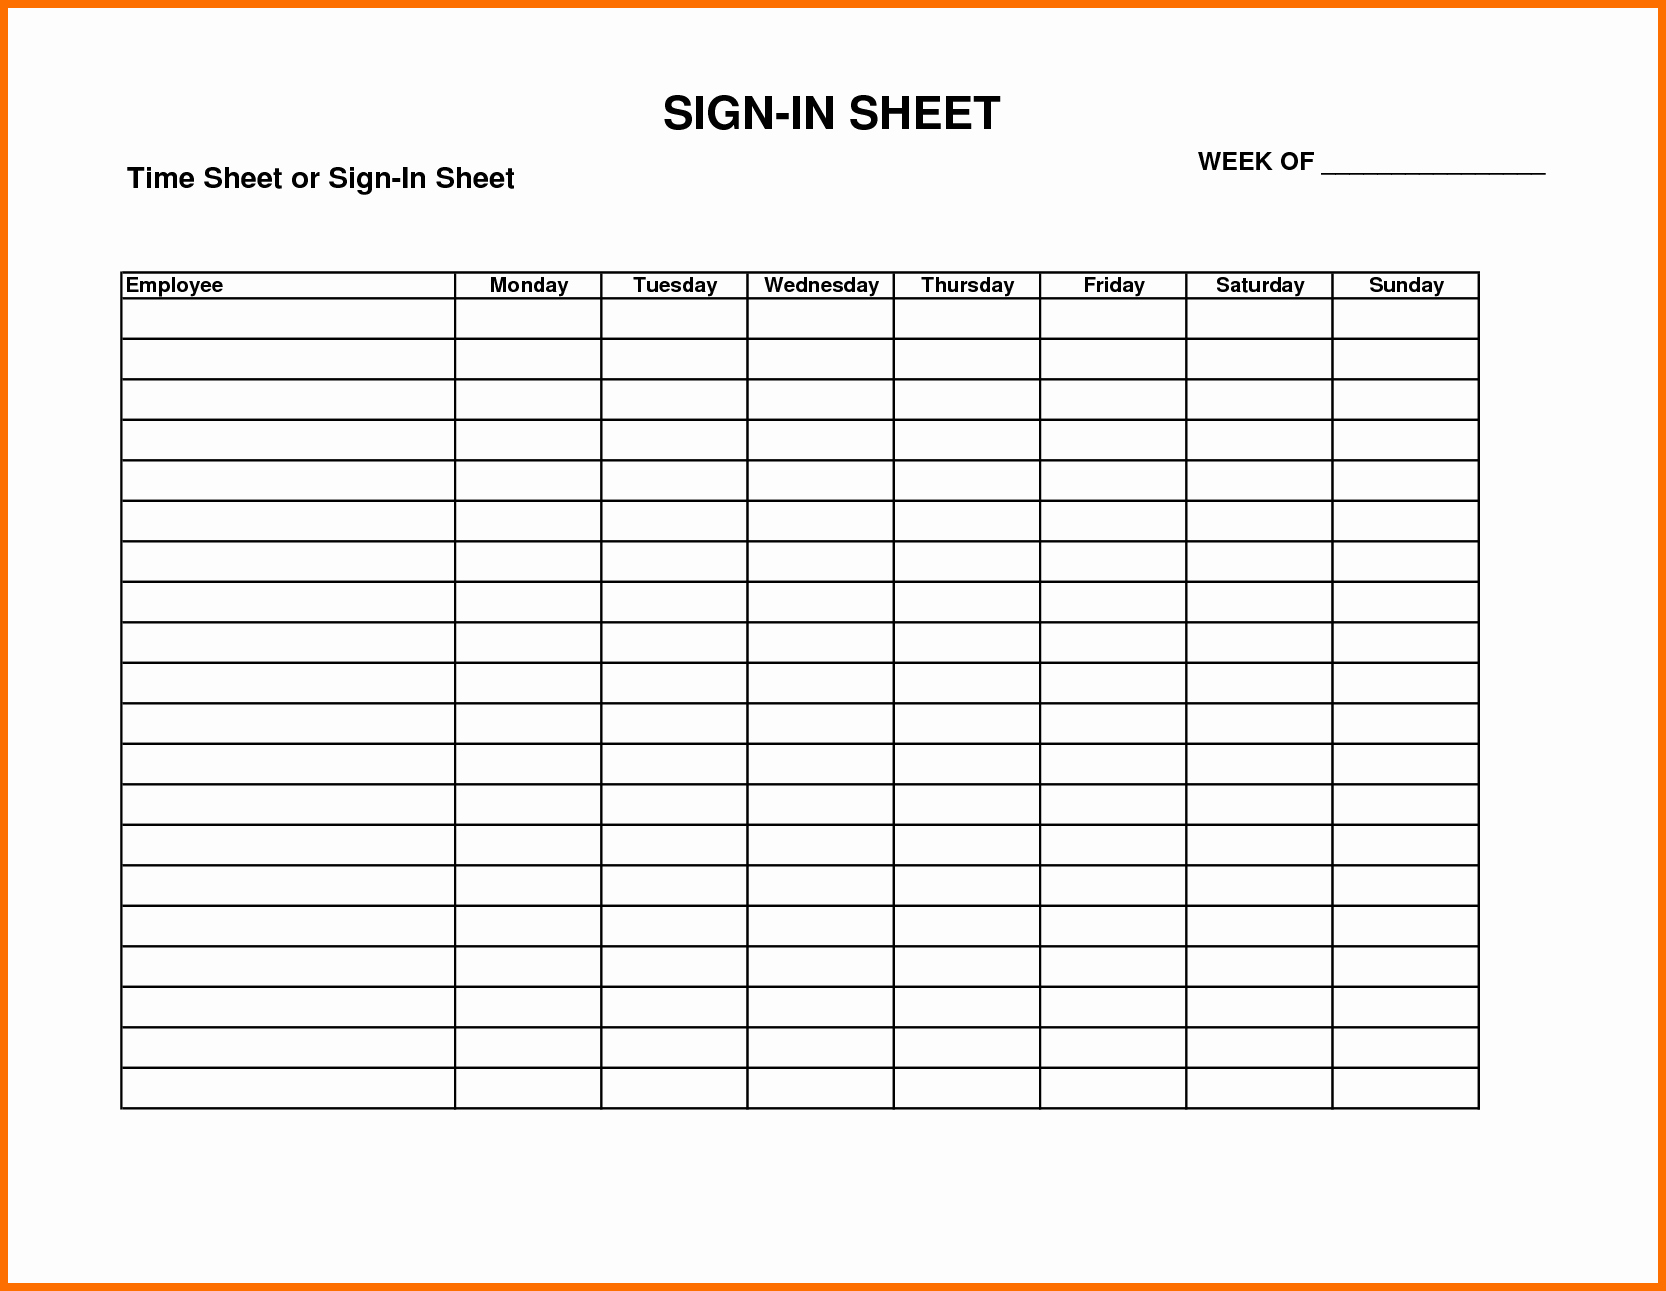 Word Template Sign In Sheet Fresh attendance Sign In Sheet Example Mughals